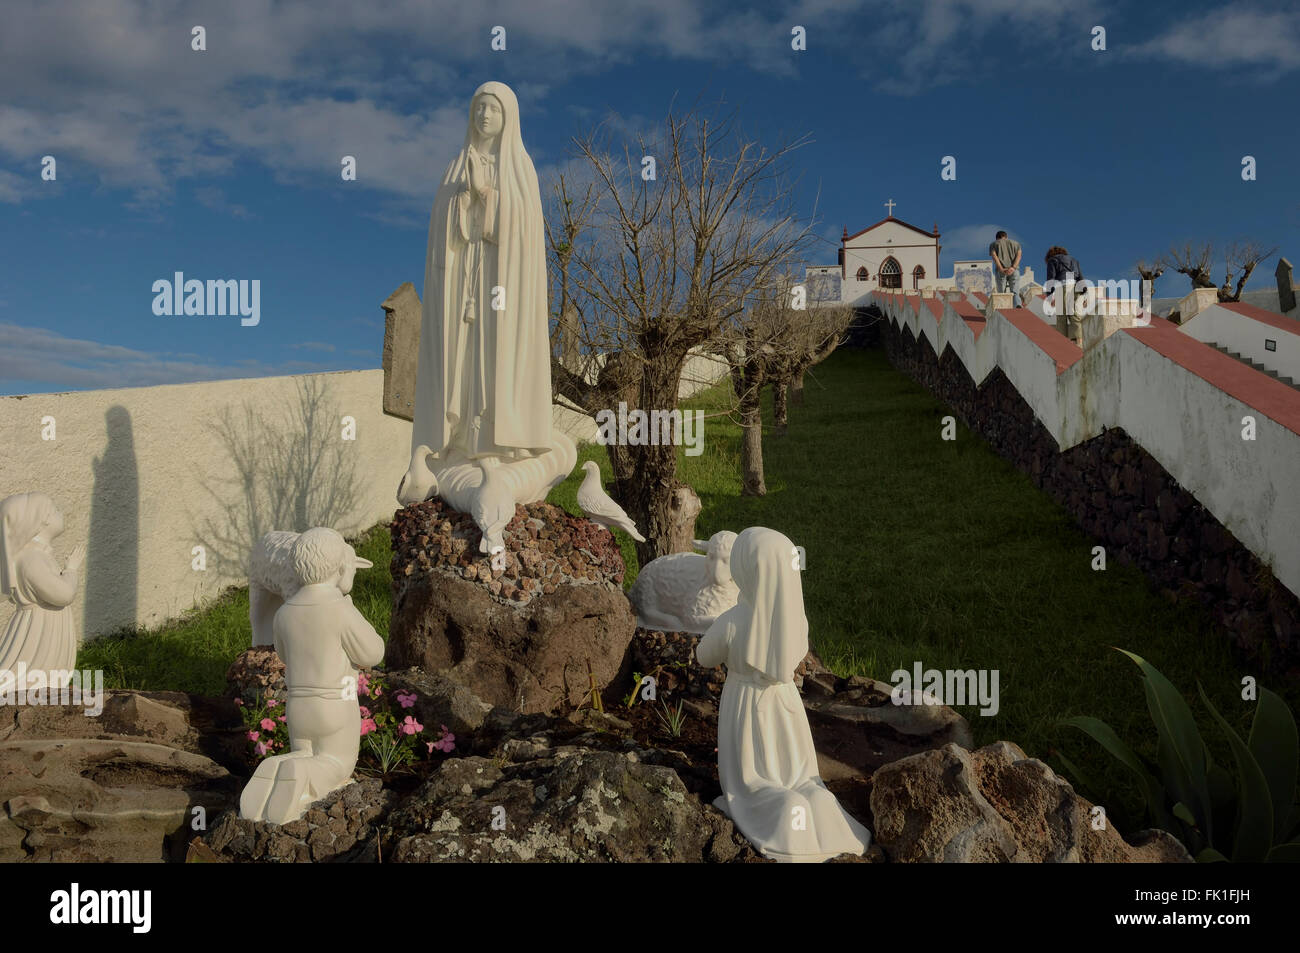 Maria Fatima High Resolution Stock Photography and Images   Alamy